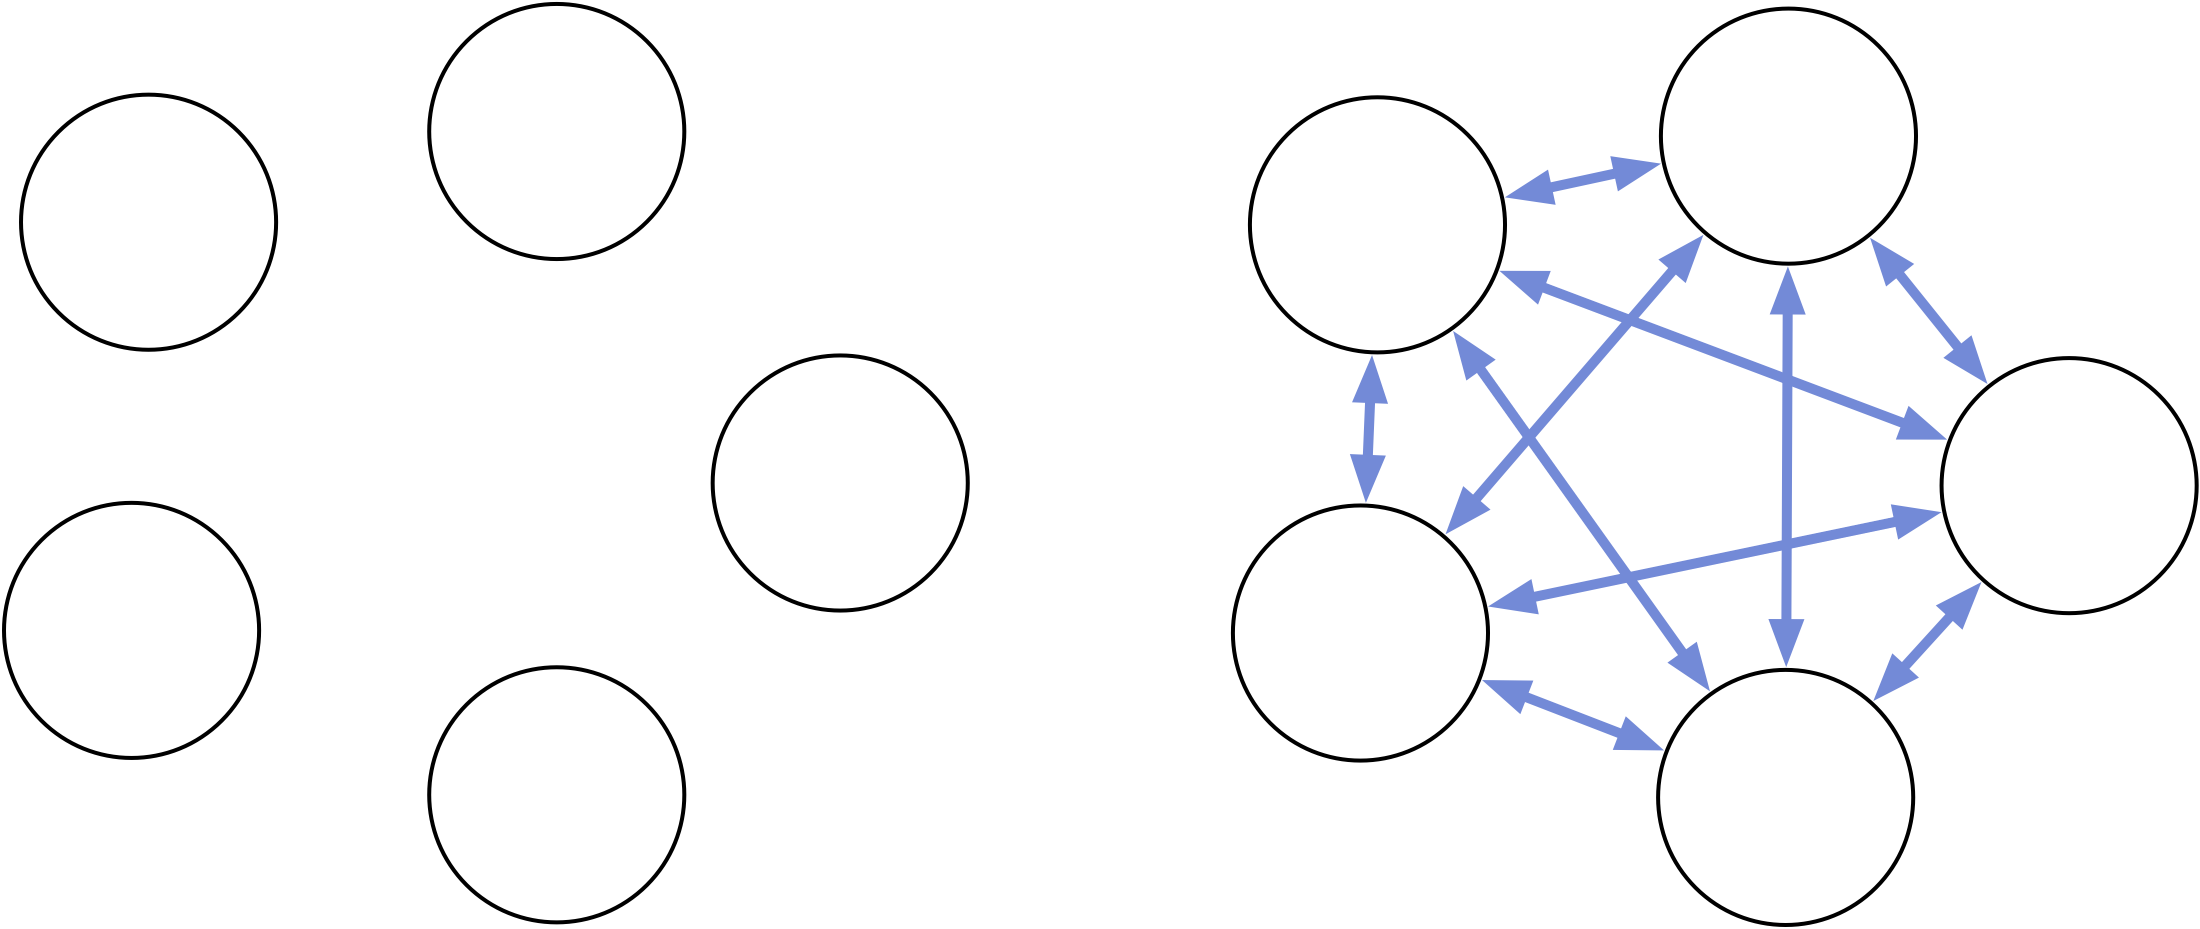 declarative vs imperative - for N states, there are N x (N - 1) possible state transitions